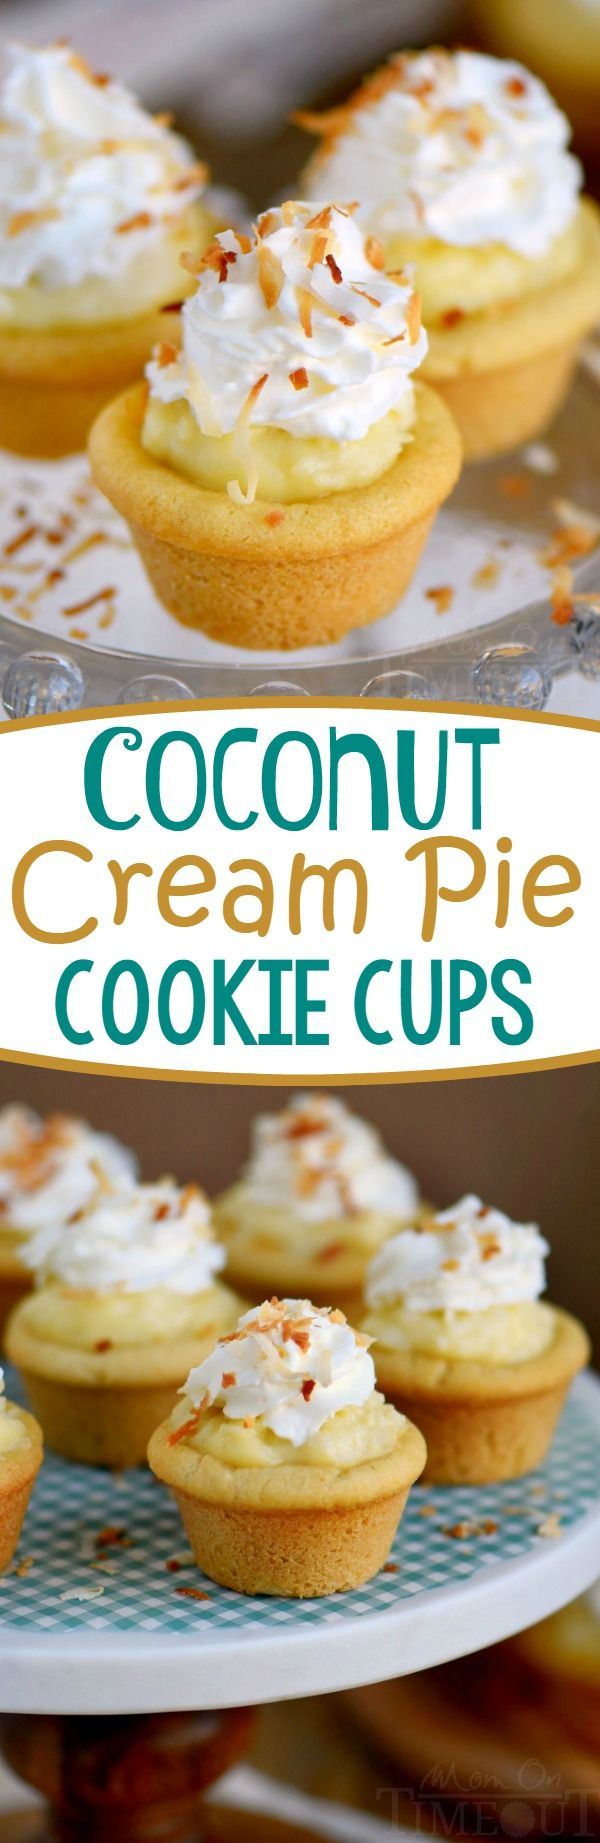 Coconut Cream Pie Cookie Cups! Two of my favorite desserts collide in this easy to make recipe that is sure to impress!